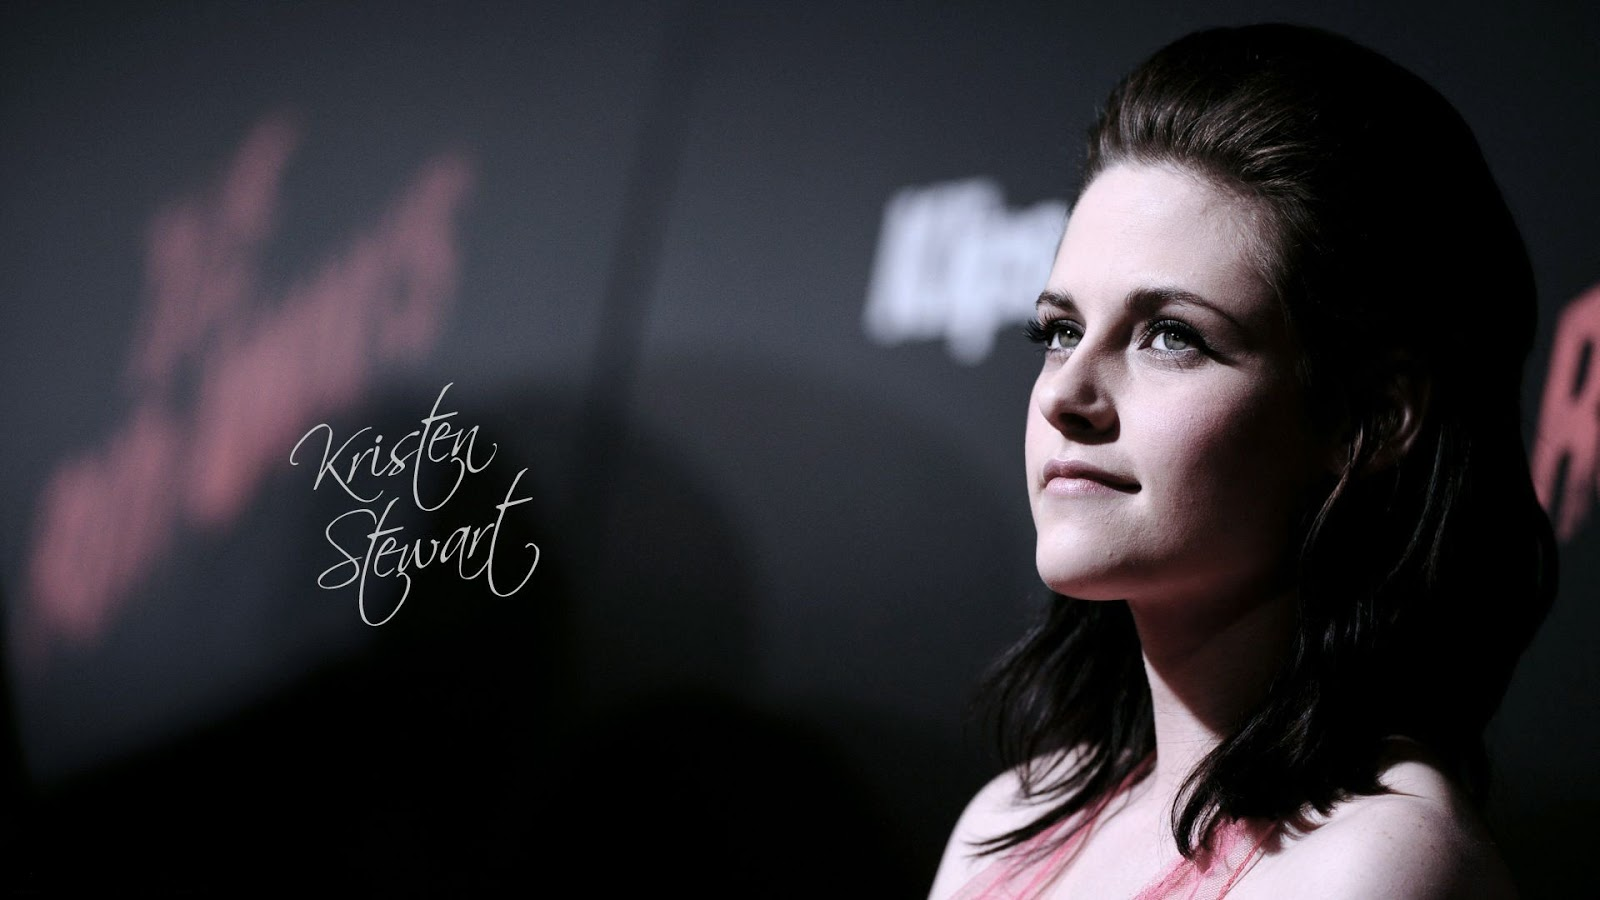 Most Beautiful Sexy Kristen Stewart Wallpapers  PIXHOME 1600x900